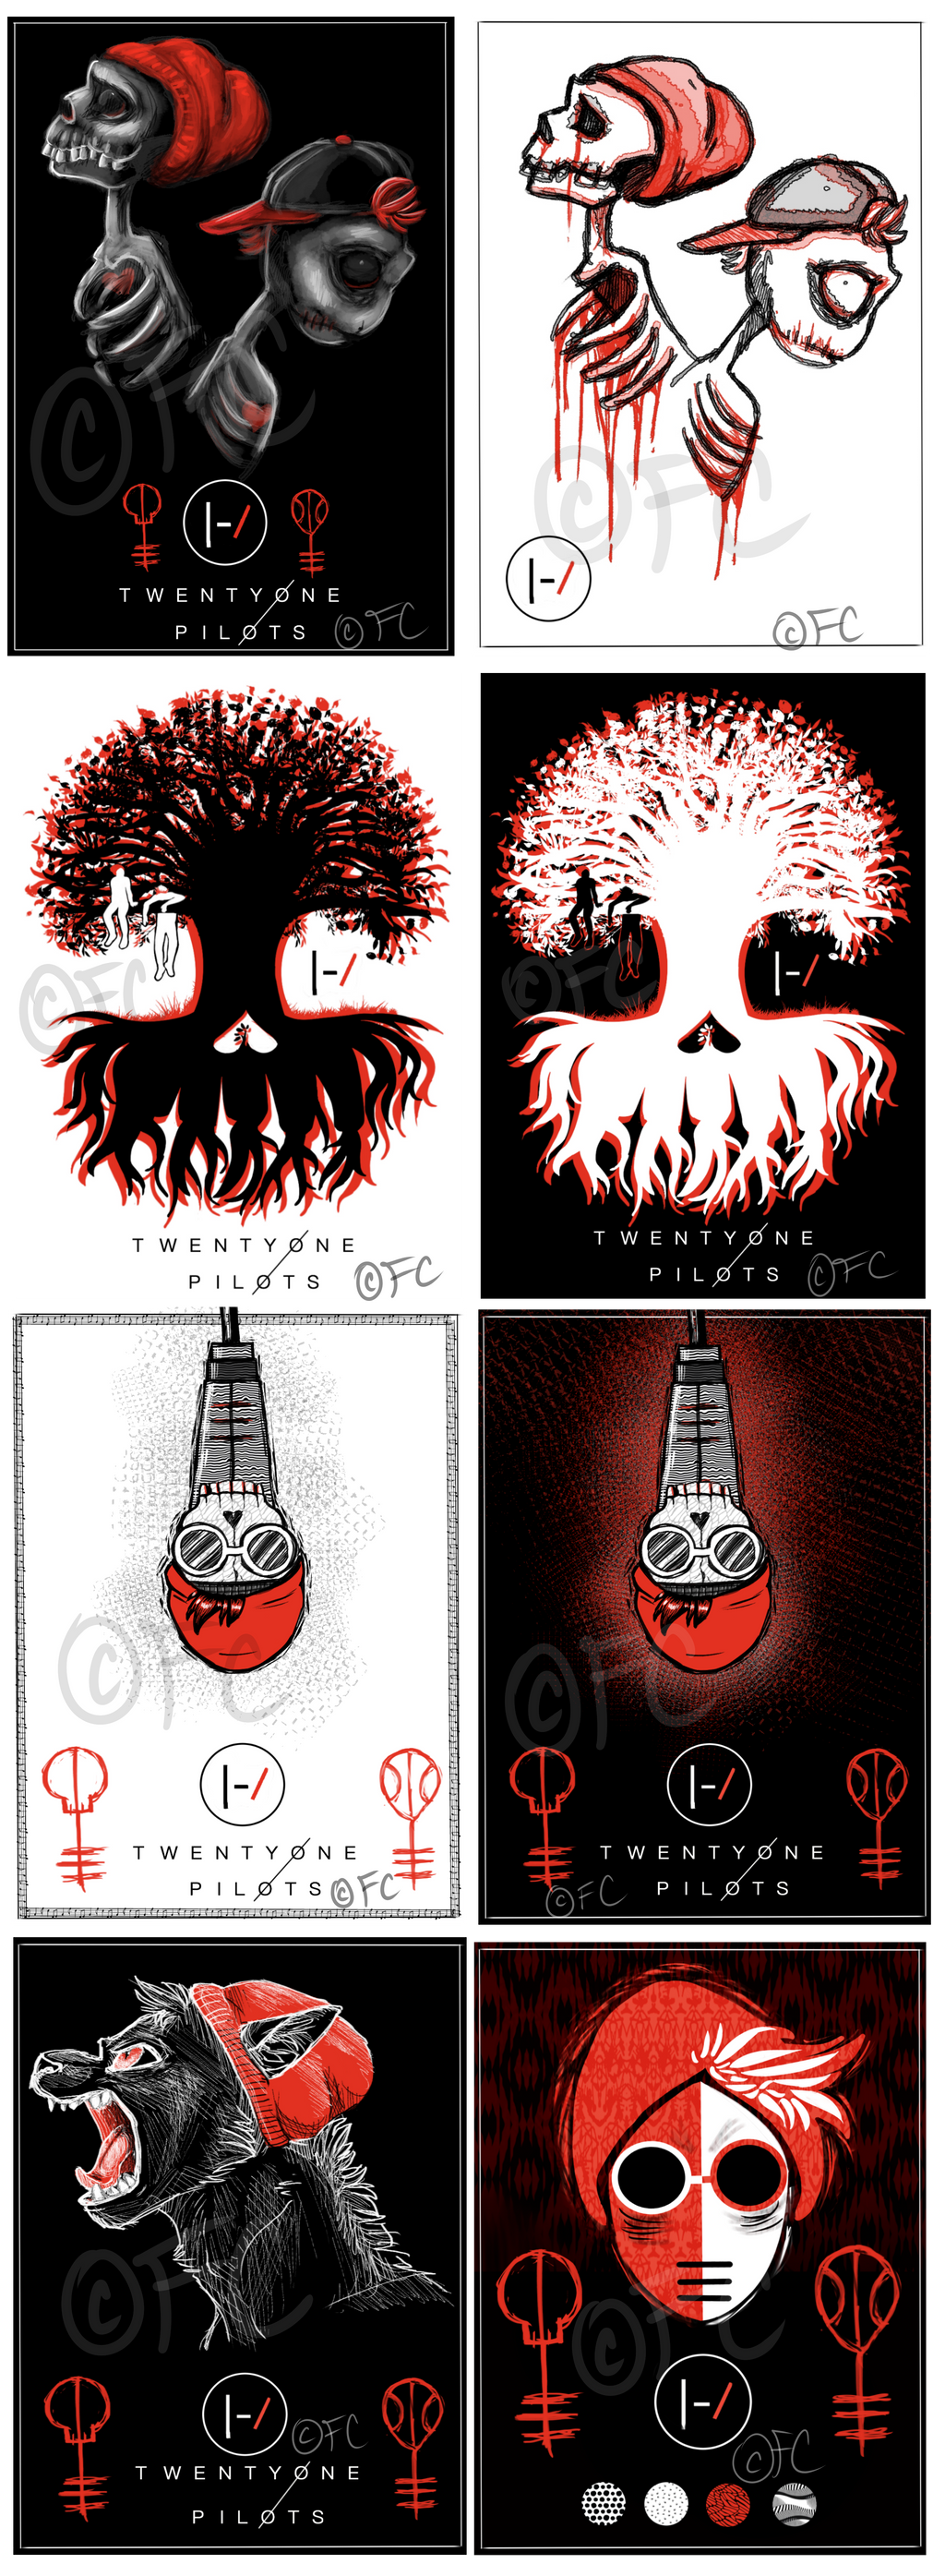 Poster contest entries for twenty one pilots by mickleo on deviantart poster contest entries for twenty one pilots by mickleo biocorpaavc